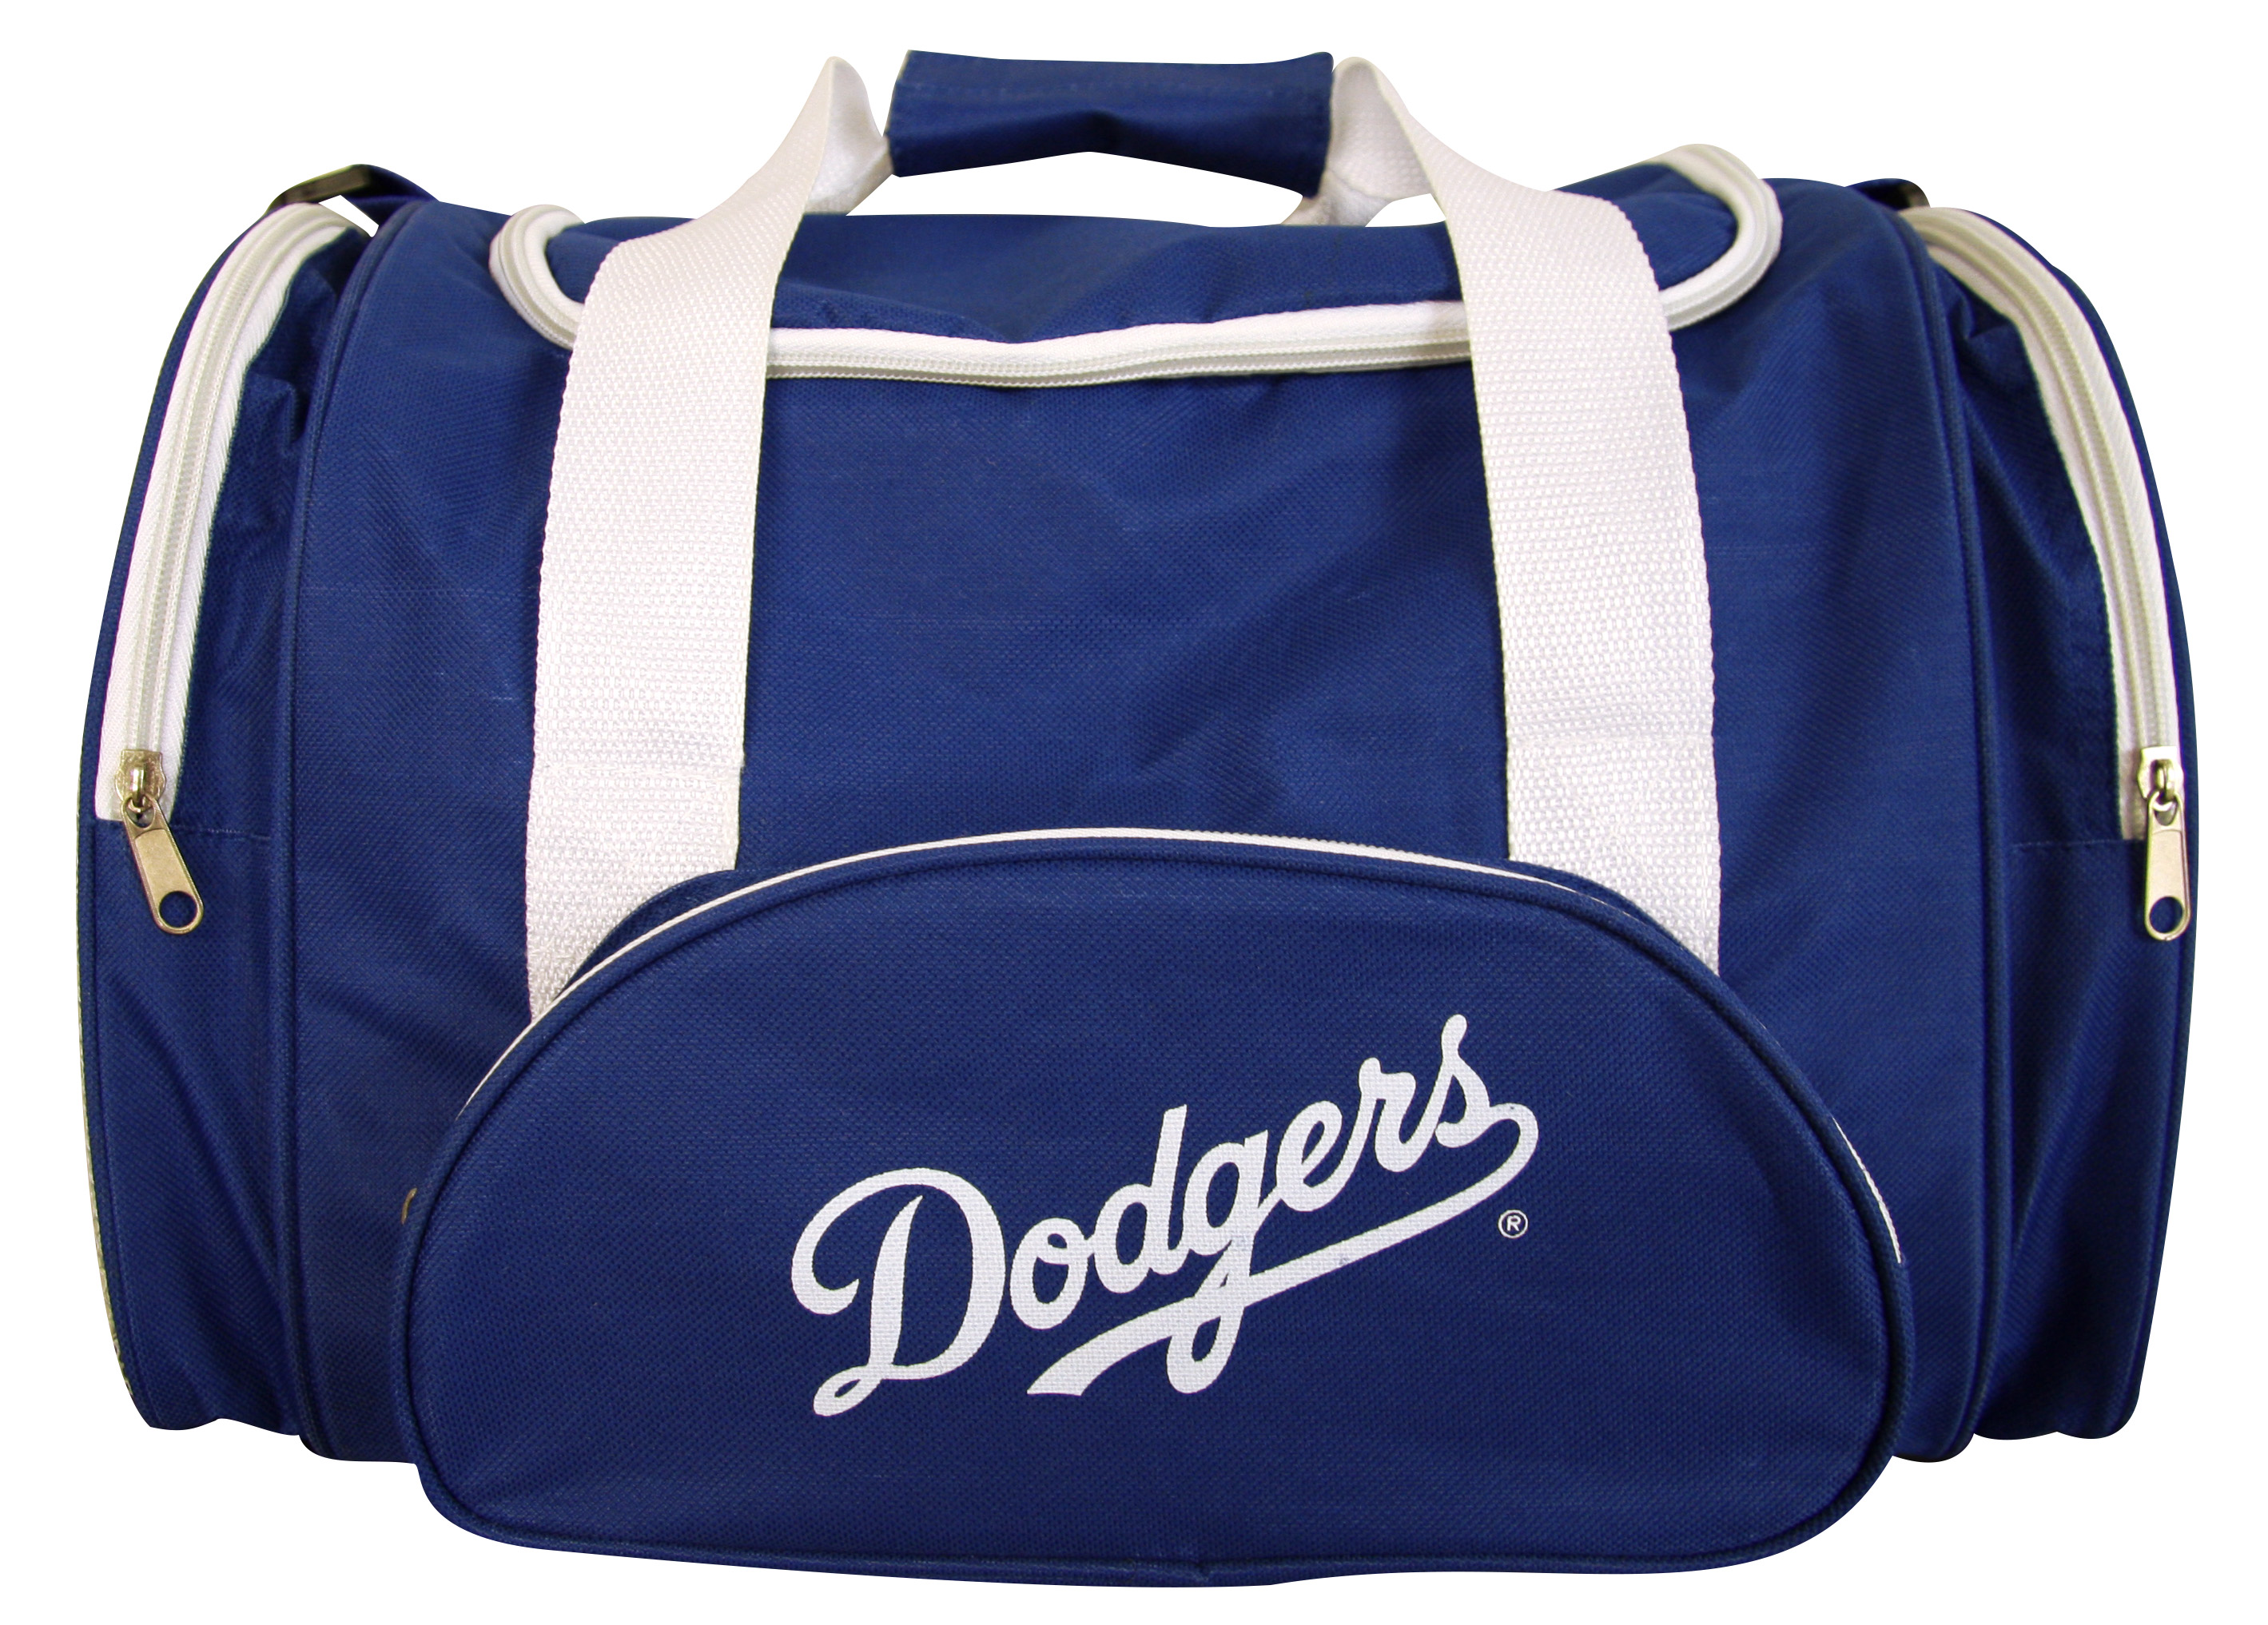 LAD 2013 Sports Bag (United Airlines)